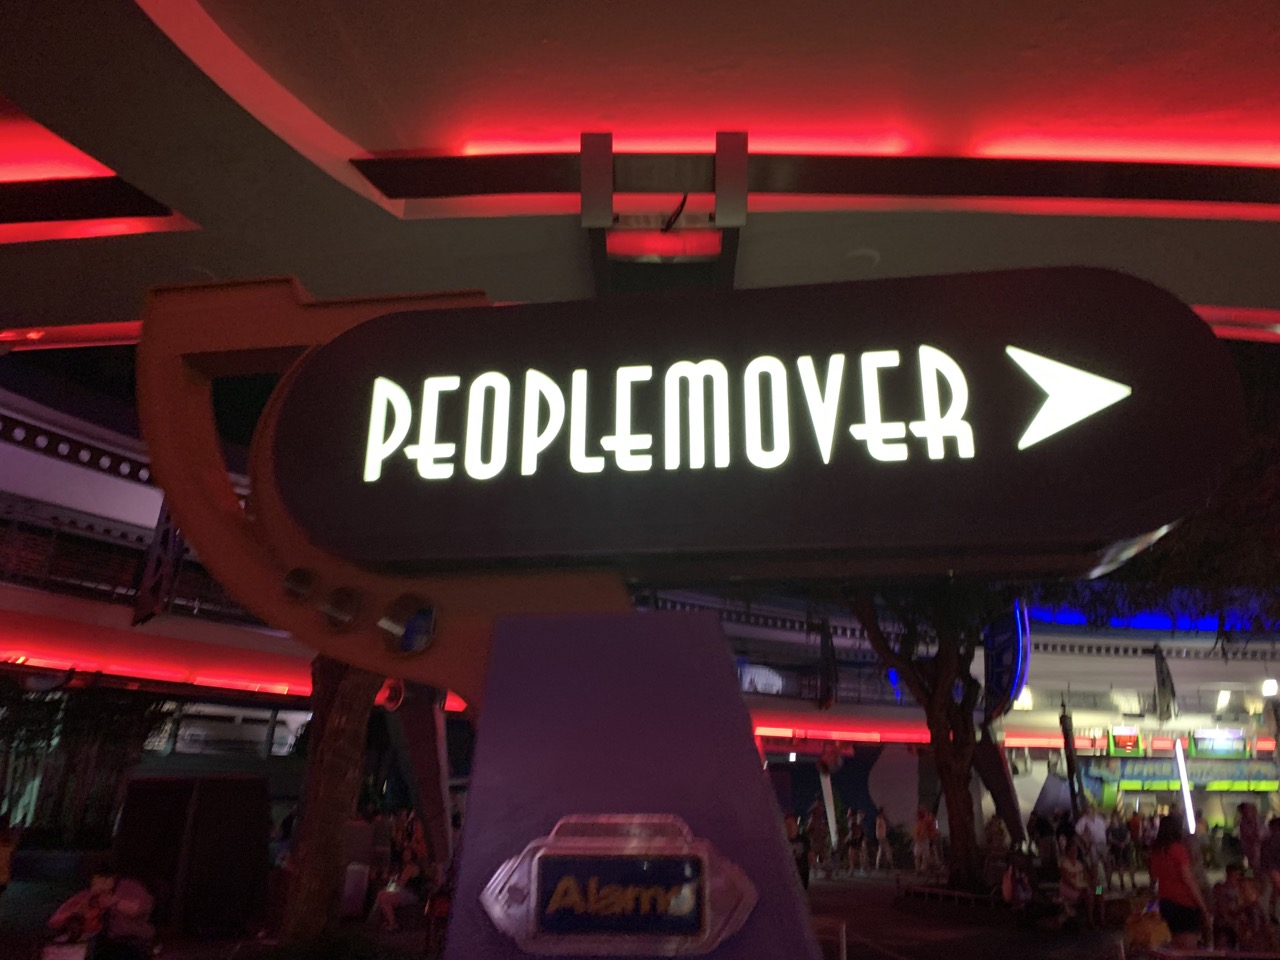 disney world trip report early summer 2019 day five 65 peoplemover.jpeg